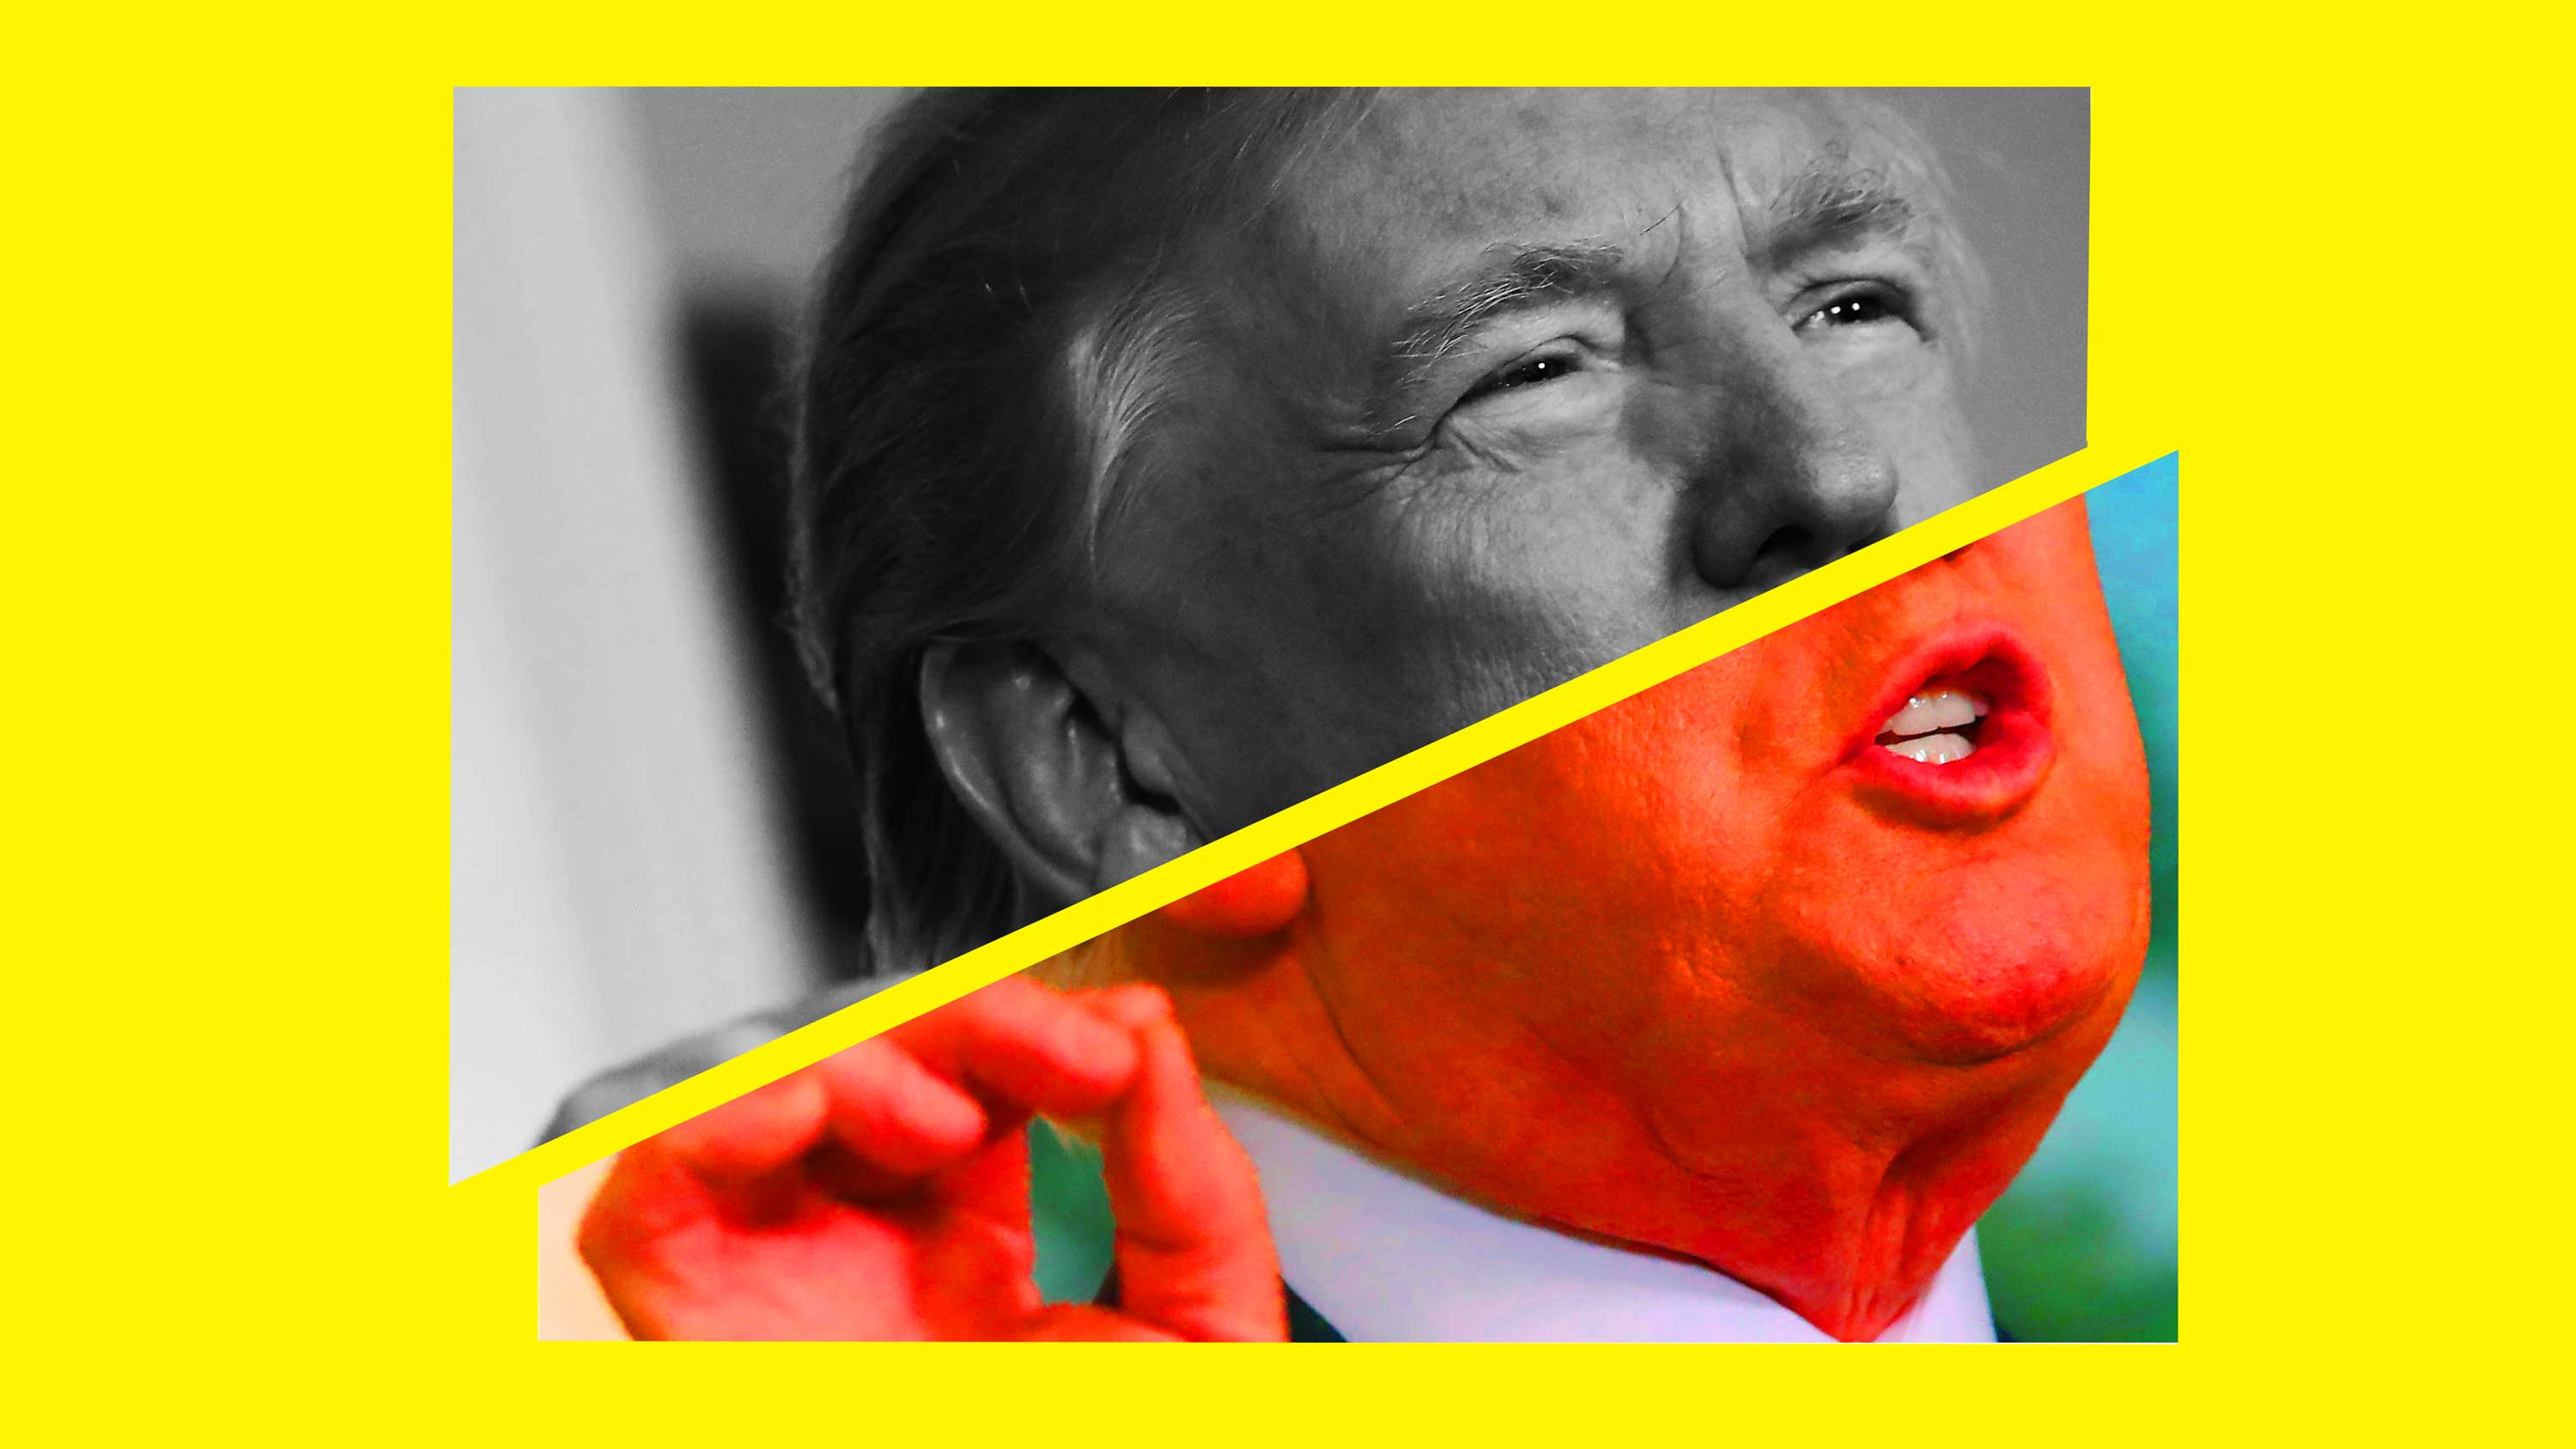 A photo illustration of President Trump, one half in black and white and the other half very saturated